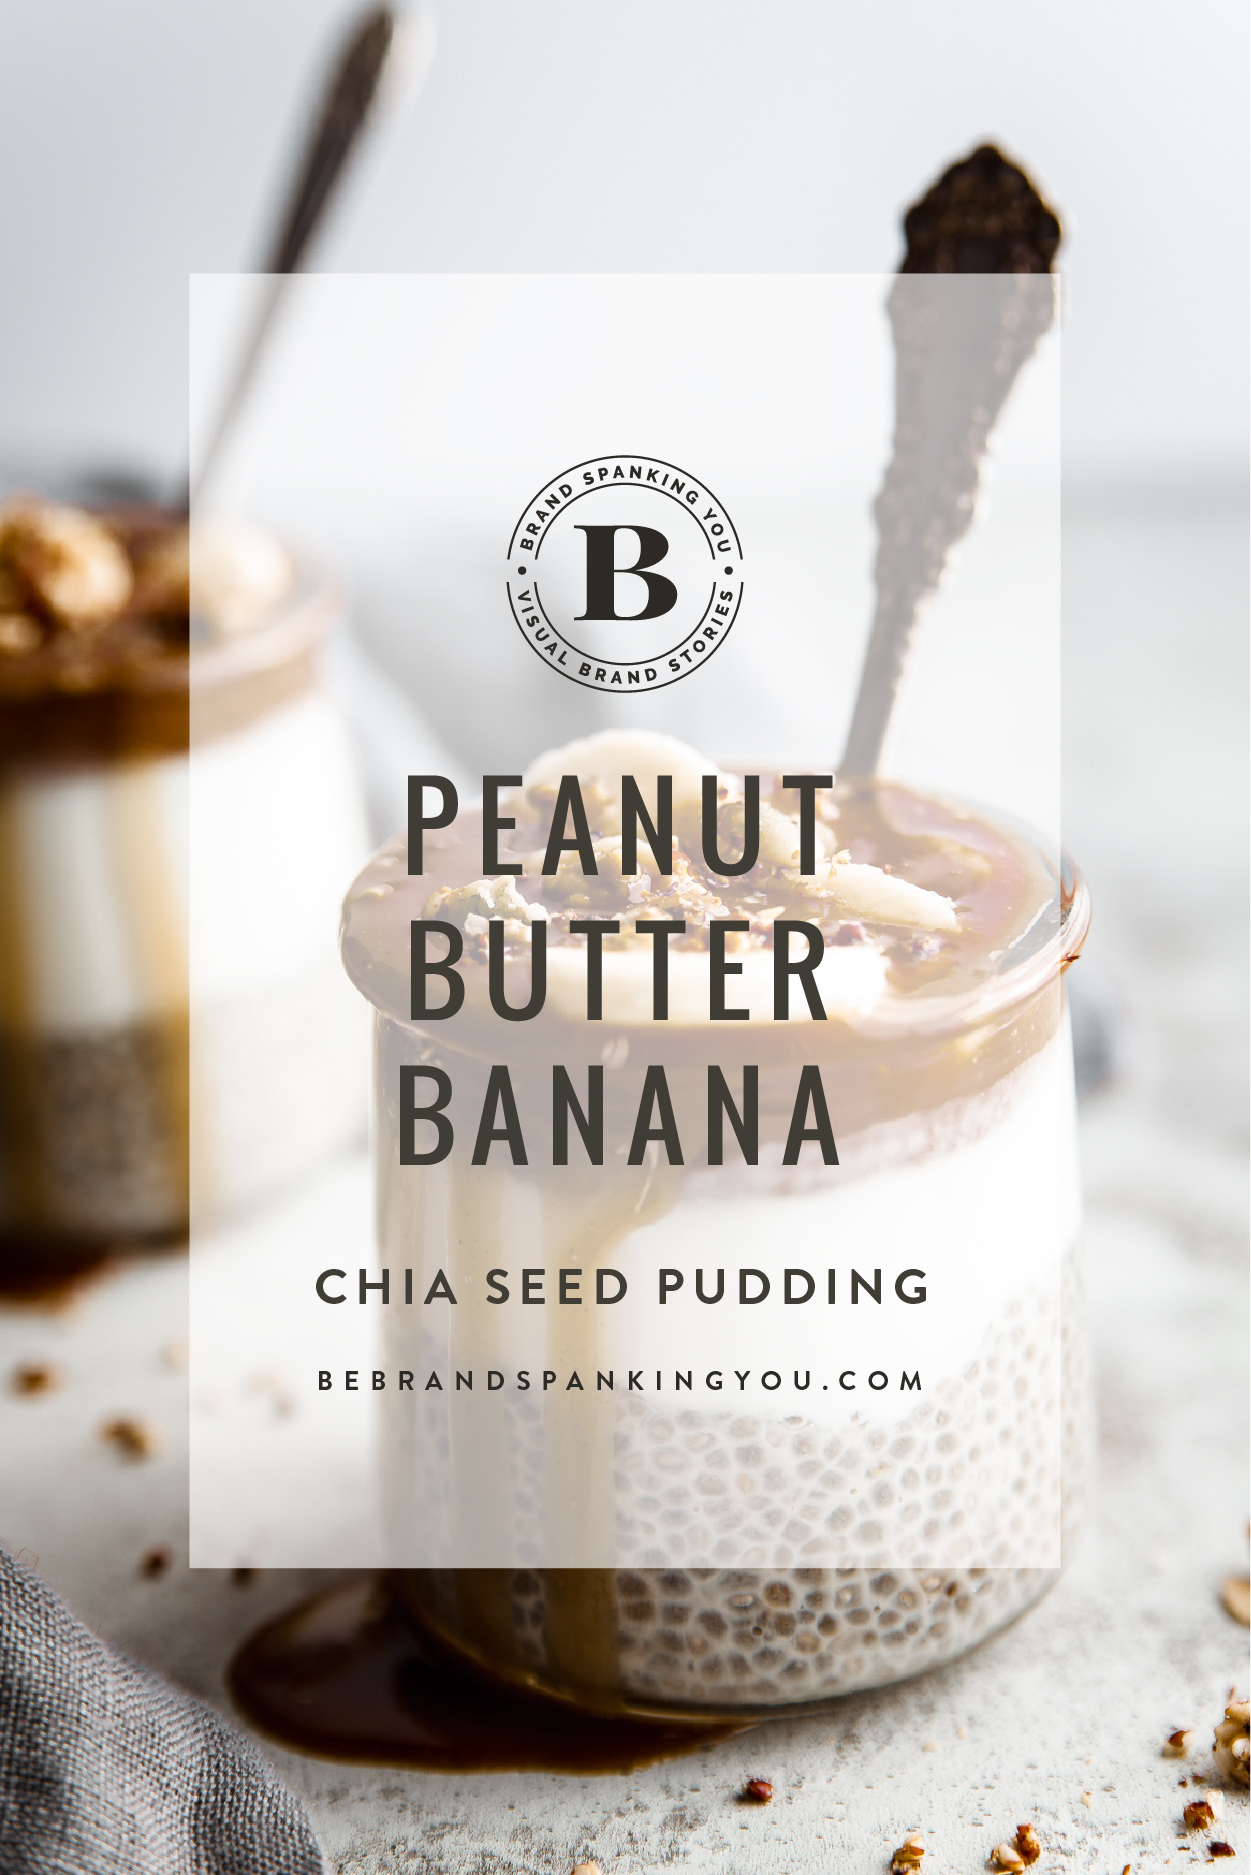 Chia seed pudding with peanut butter caramel sauce and bananas.